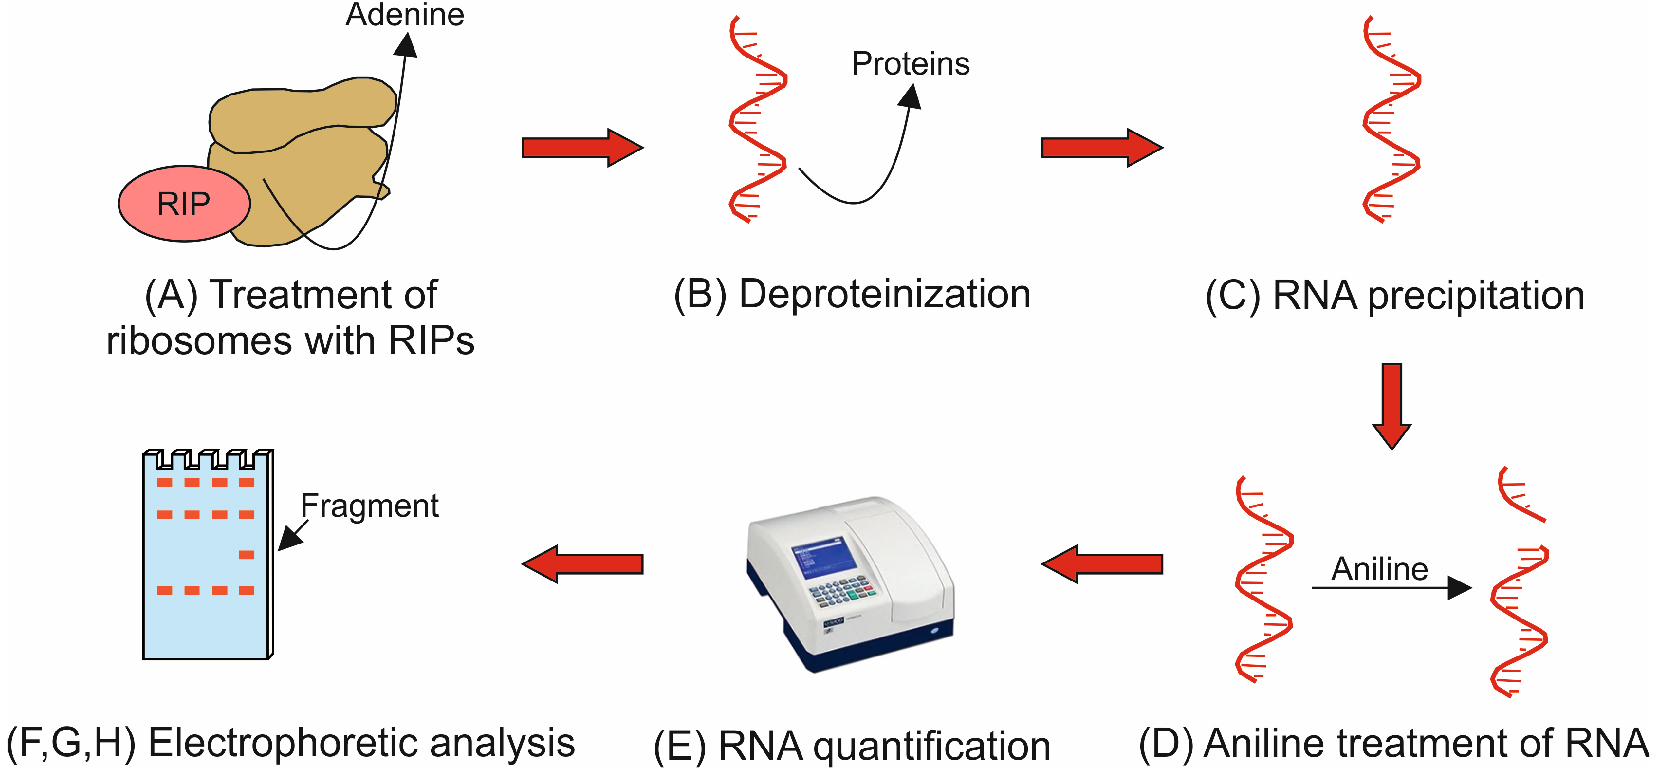 Ribosomal rna n glycosylase activity assay of ribosome figure 2 flowchart illustrating protocol procedure parts a h the flowchart shows the key steps describing the eight main parts of the protocol procedure pooptronica